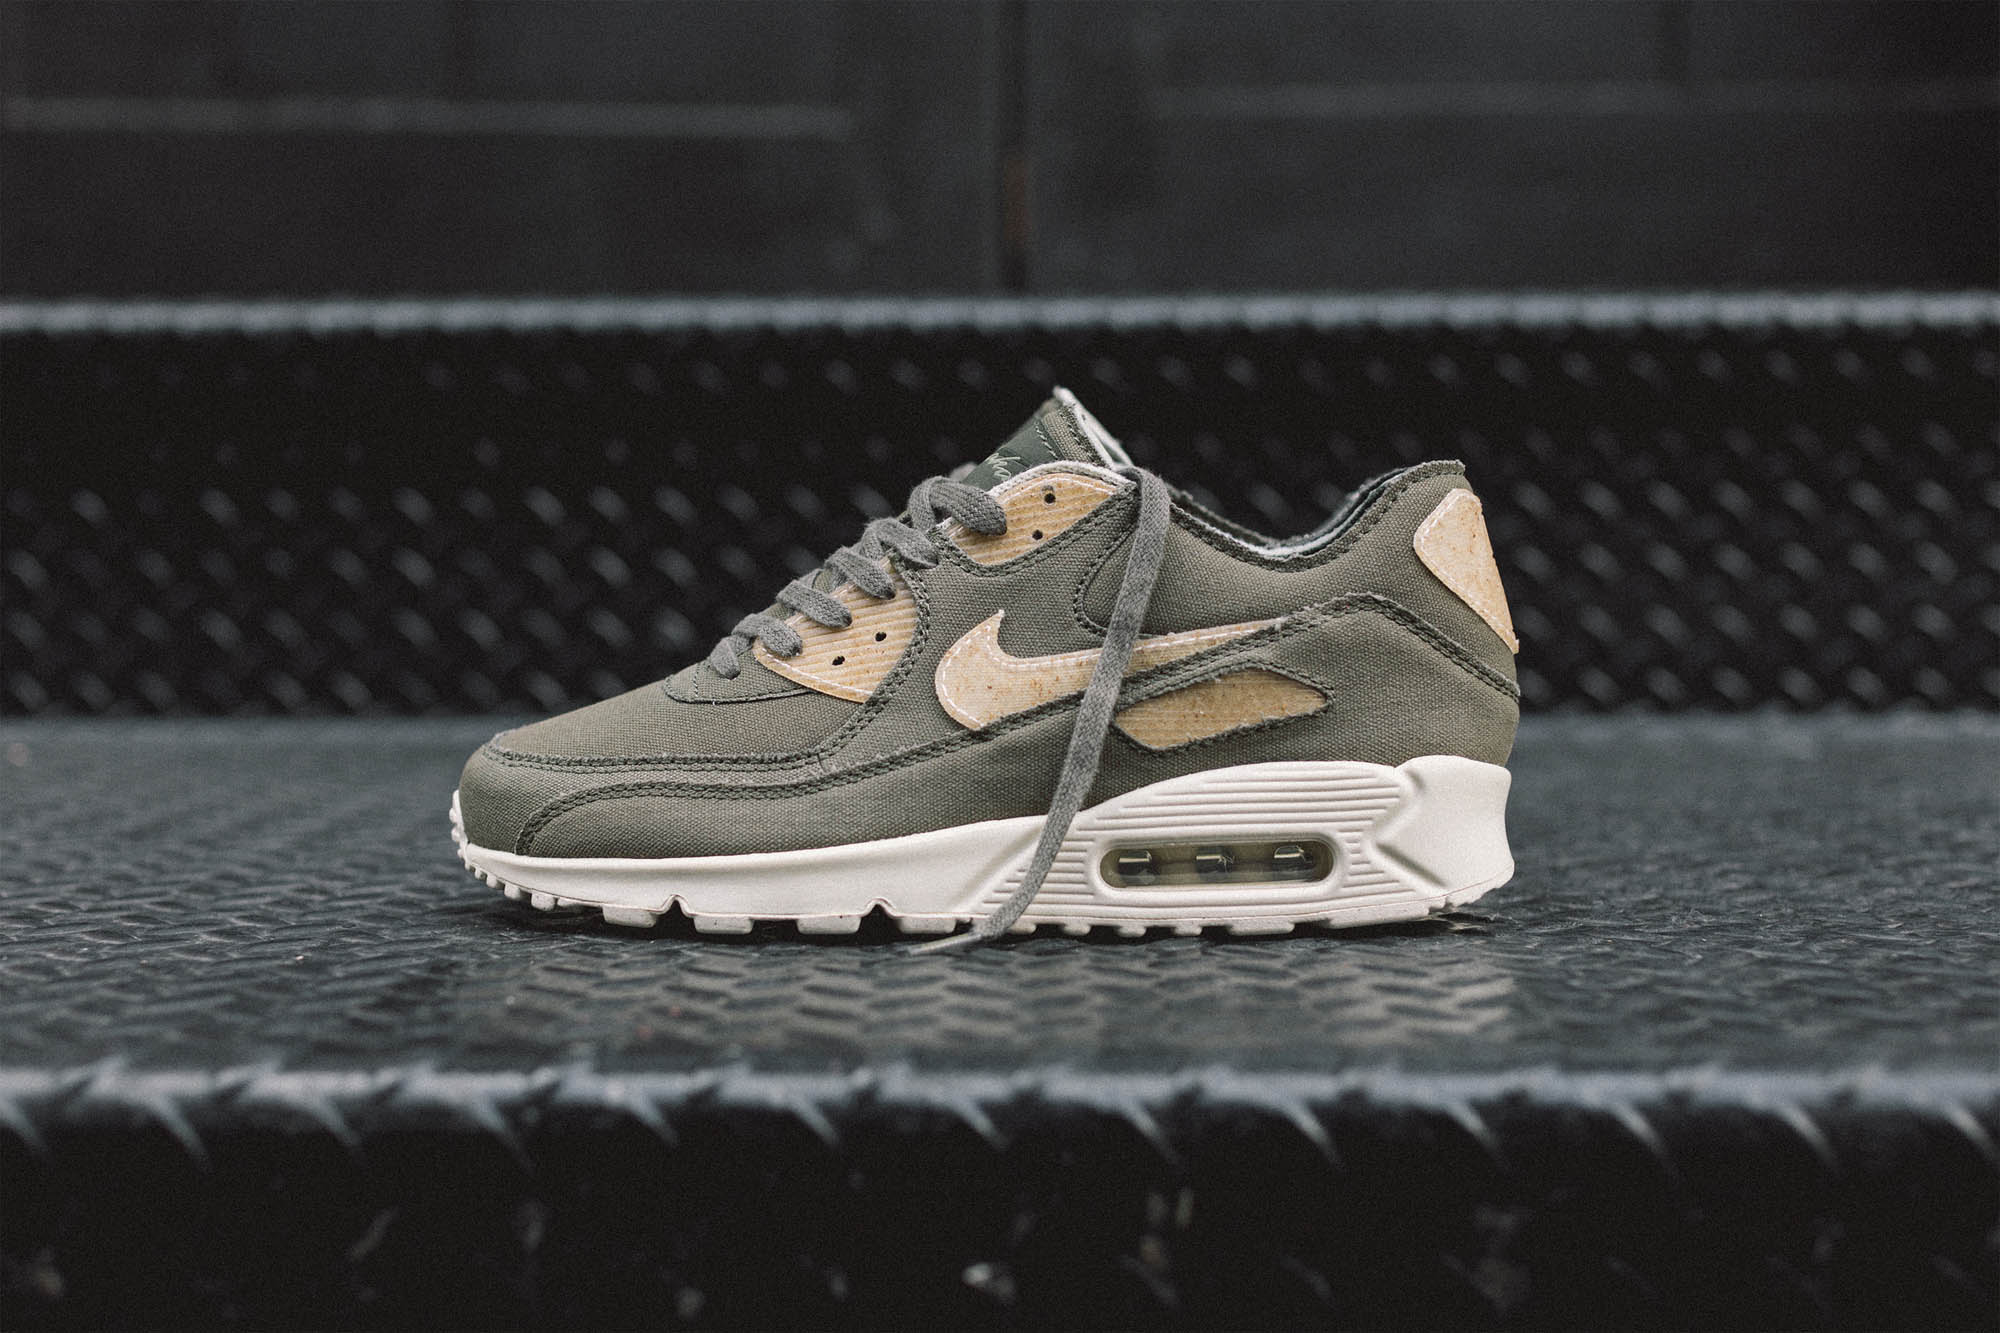 nike air max 90 new york UGLYMELY - SNEAKERS STREET  UGLYMELY – SNEAKERS STREET